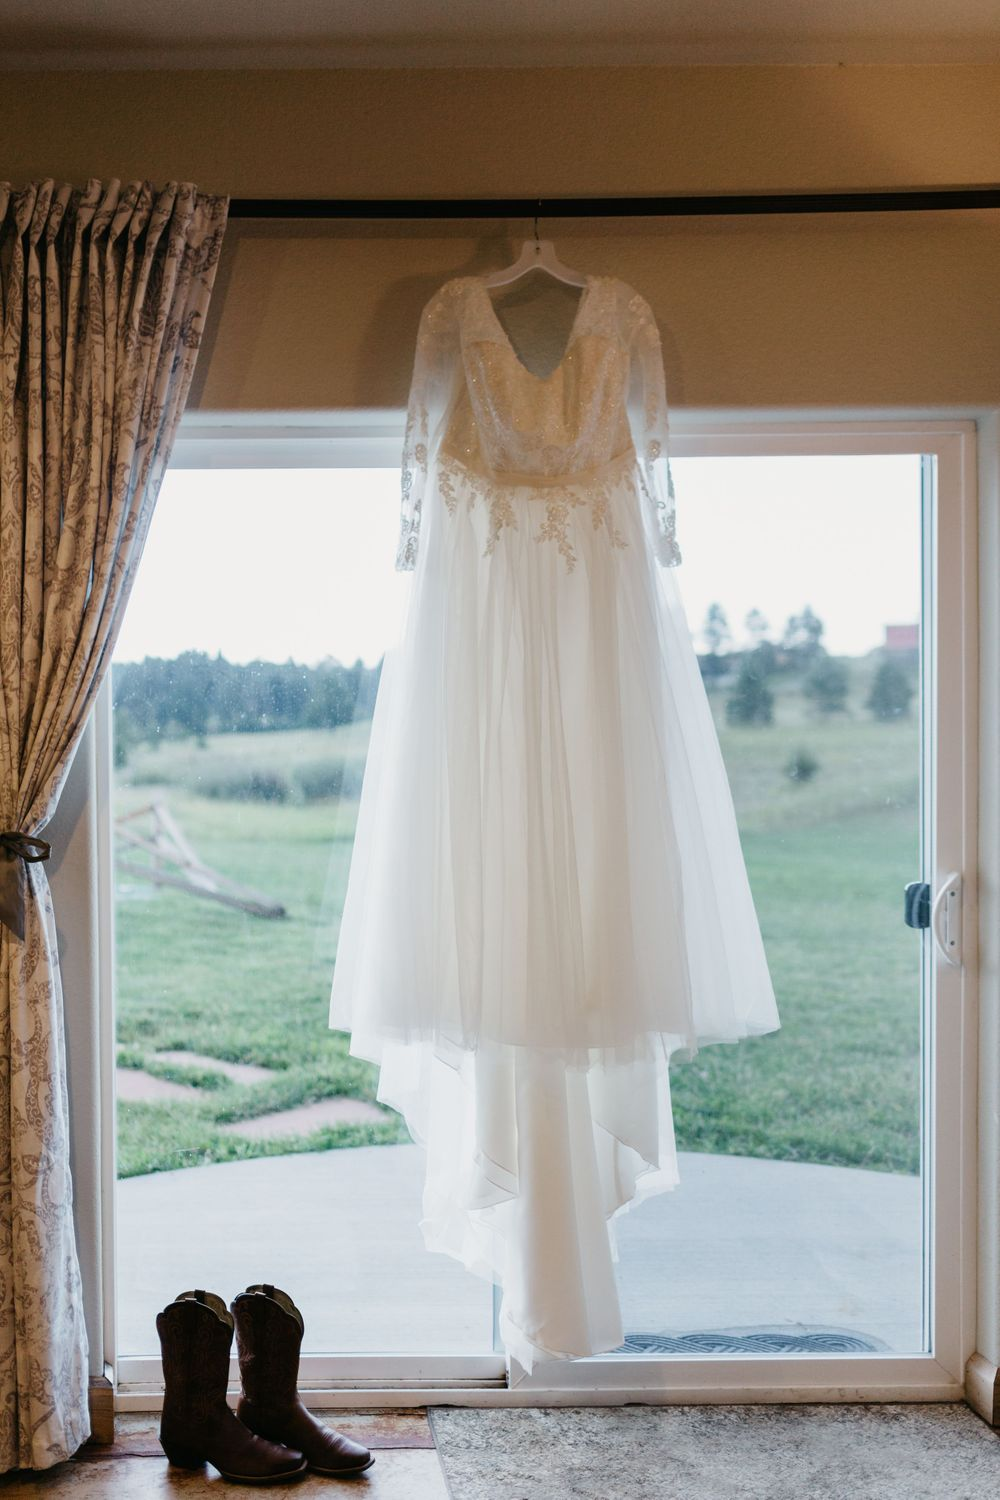 Wedding Dress in Window Photography Ideas